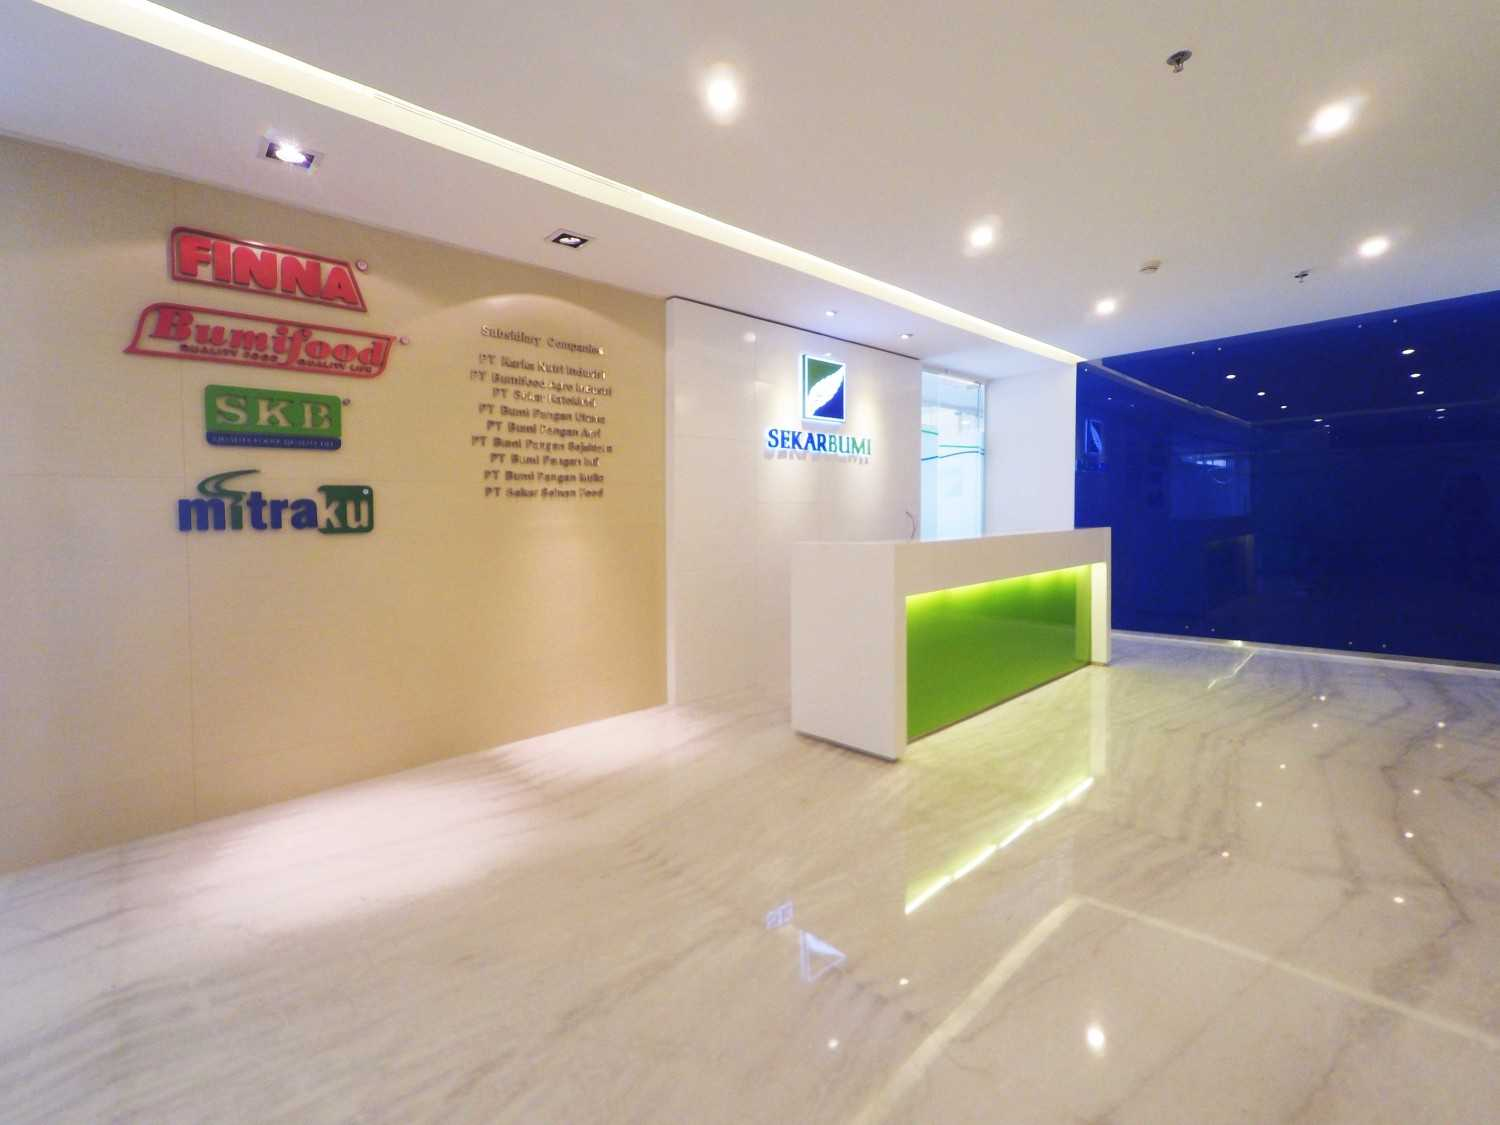 Arkadia Works Sekar Bumi Office Renovation Plaza Asia 21St Floor Plaza Asia 21St Floor Reception Area  14072